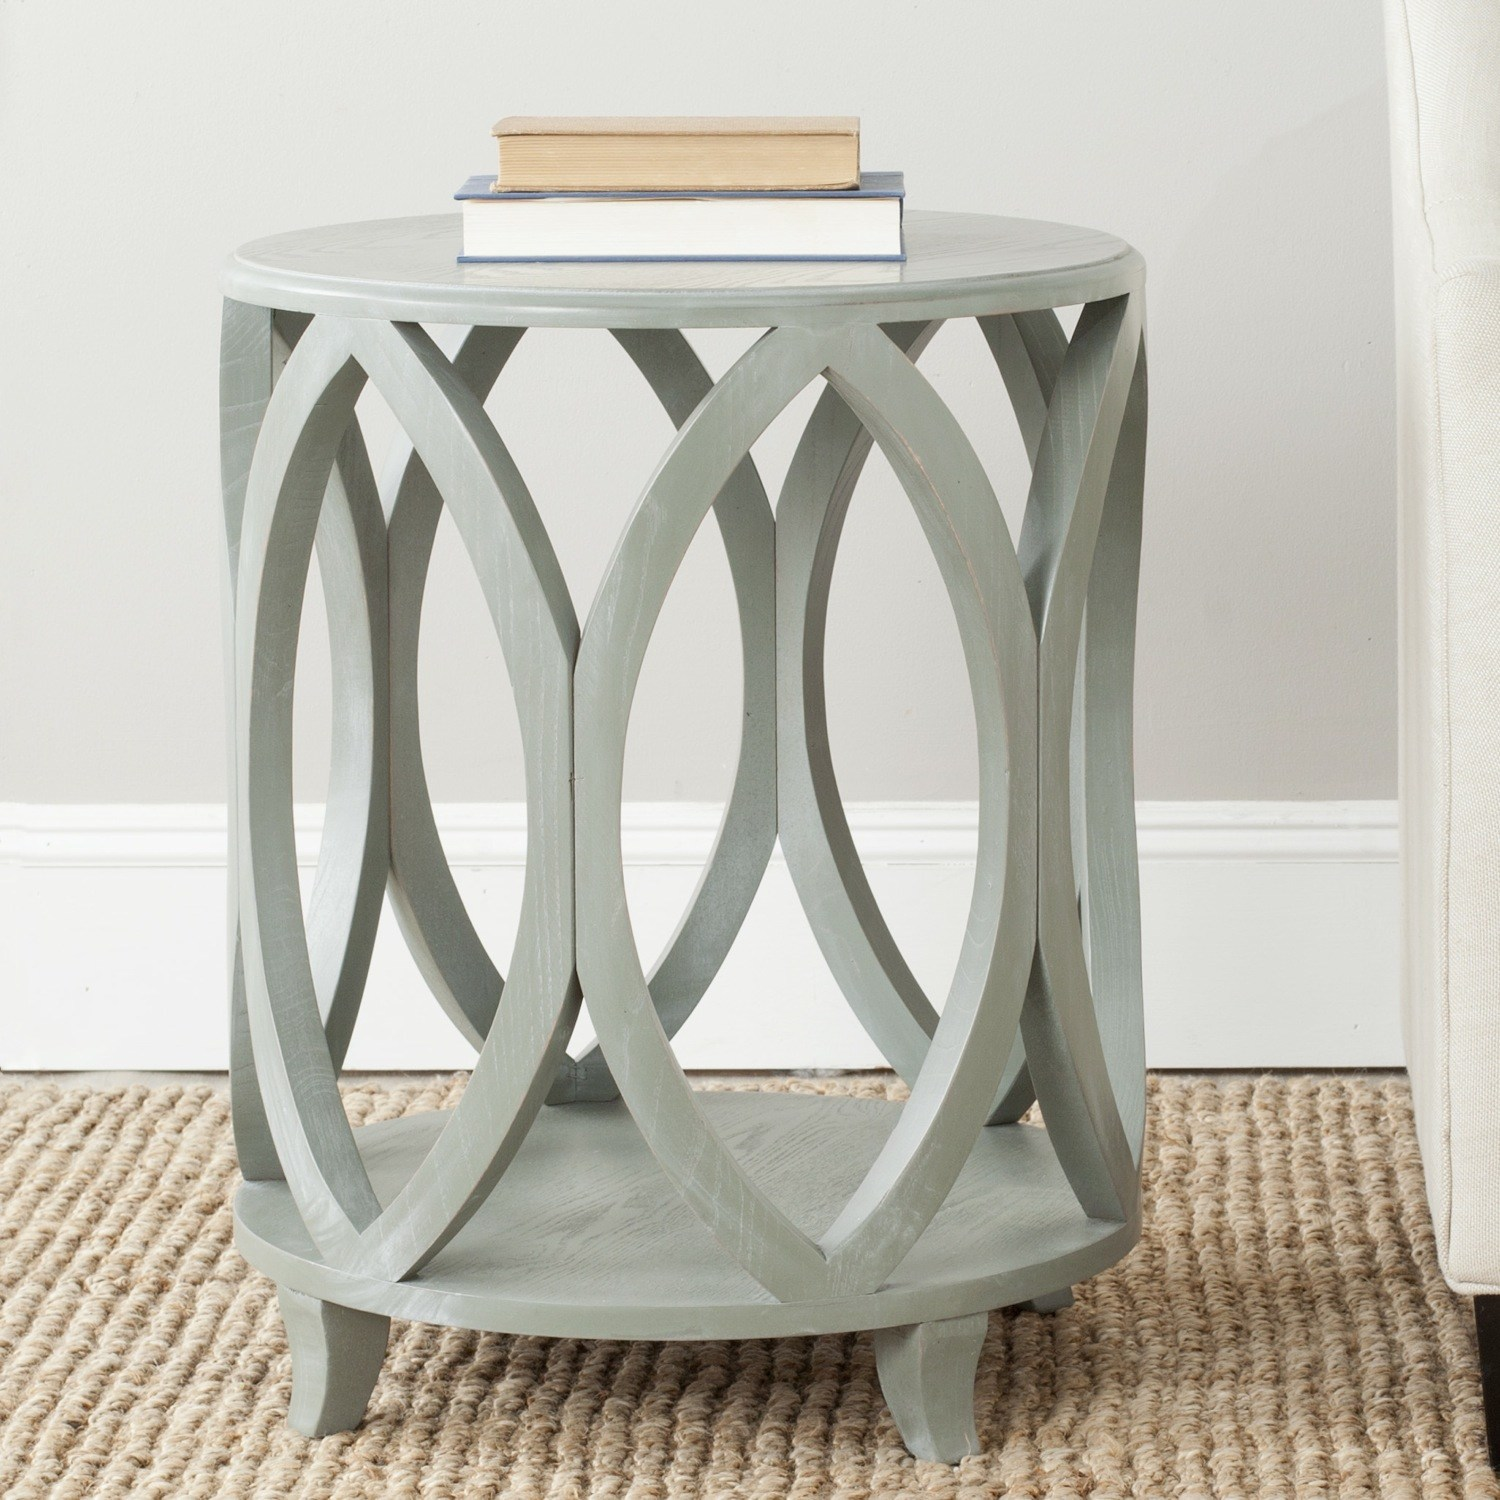 safavieh janika ash grey accent table free shipping today ellipsis tablet decor cabinets furniture legs blue tiffany lamp hallway chest diy small oblong tablecloth round folding